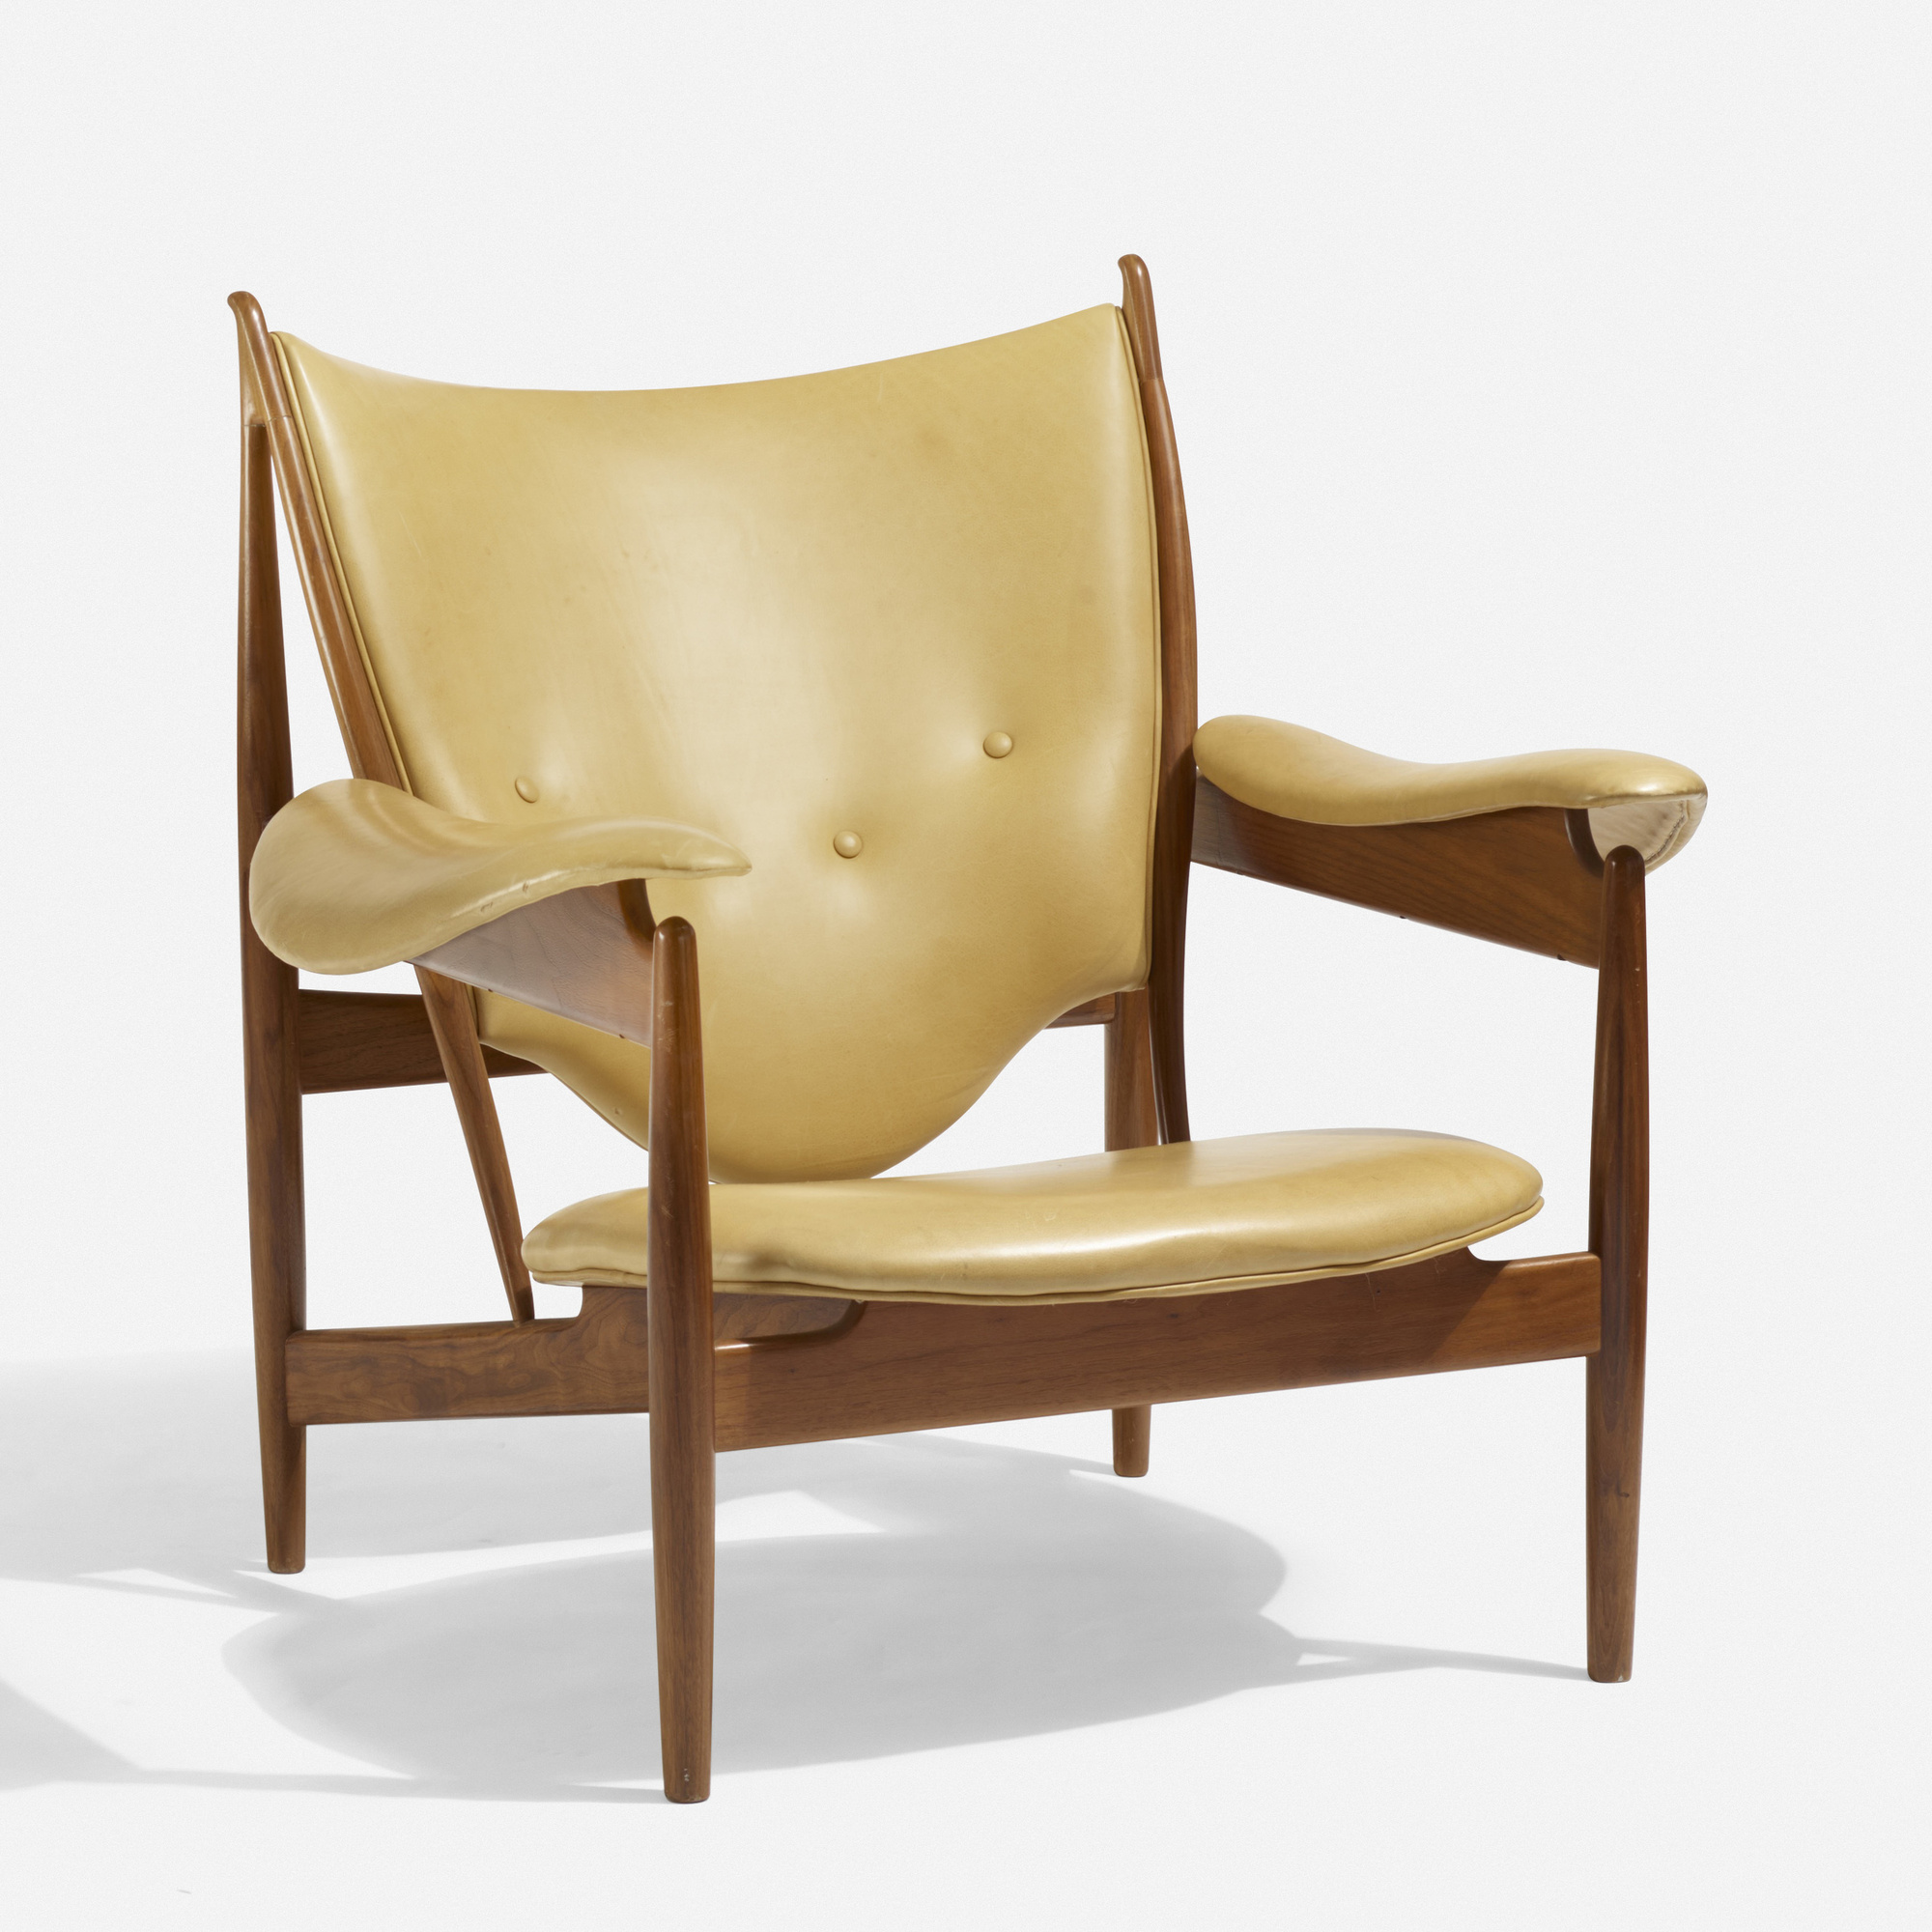 176 Finn Juhl Chieftain Lounge Chair Scandinavian Design 9 May